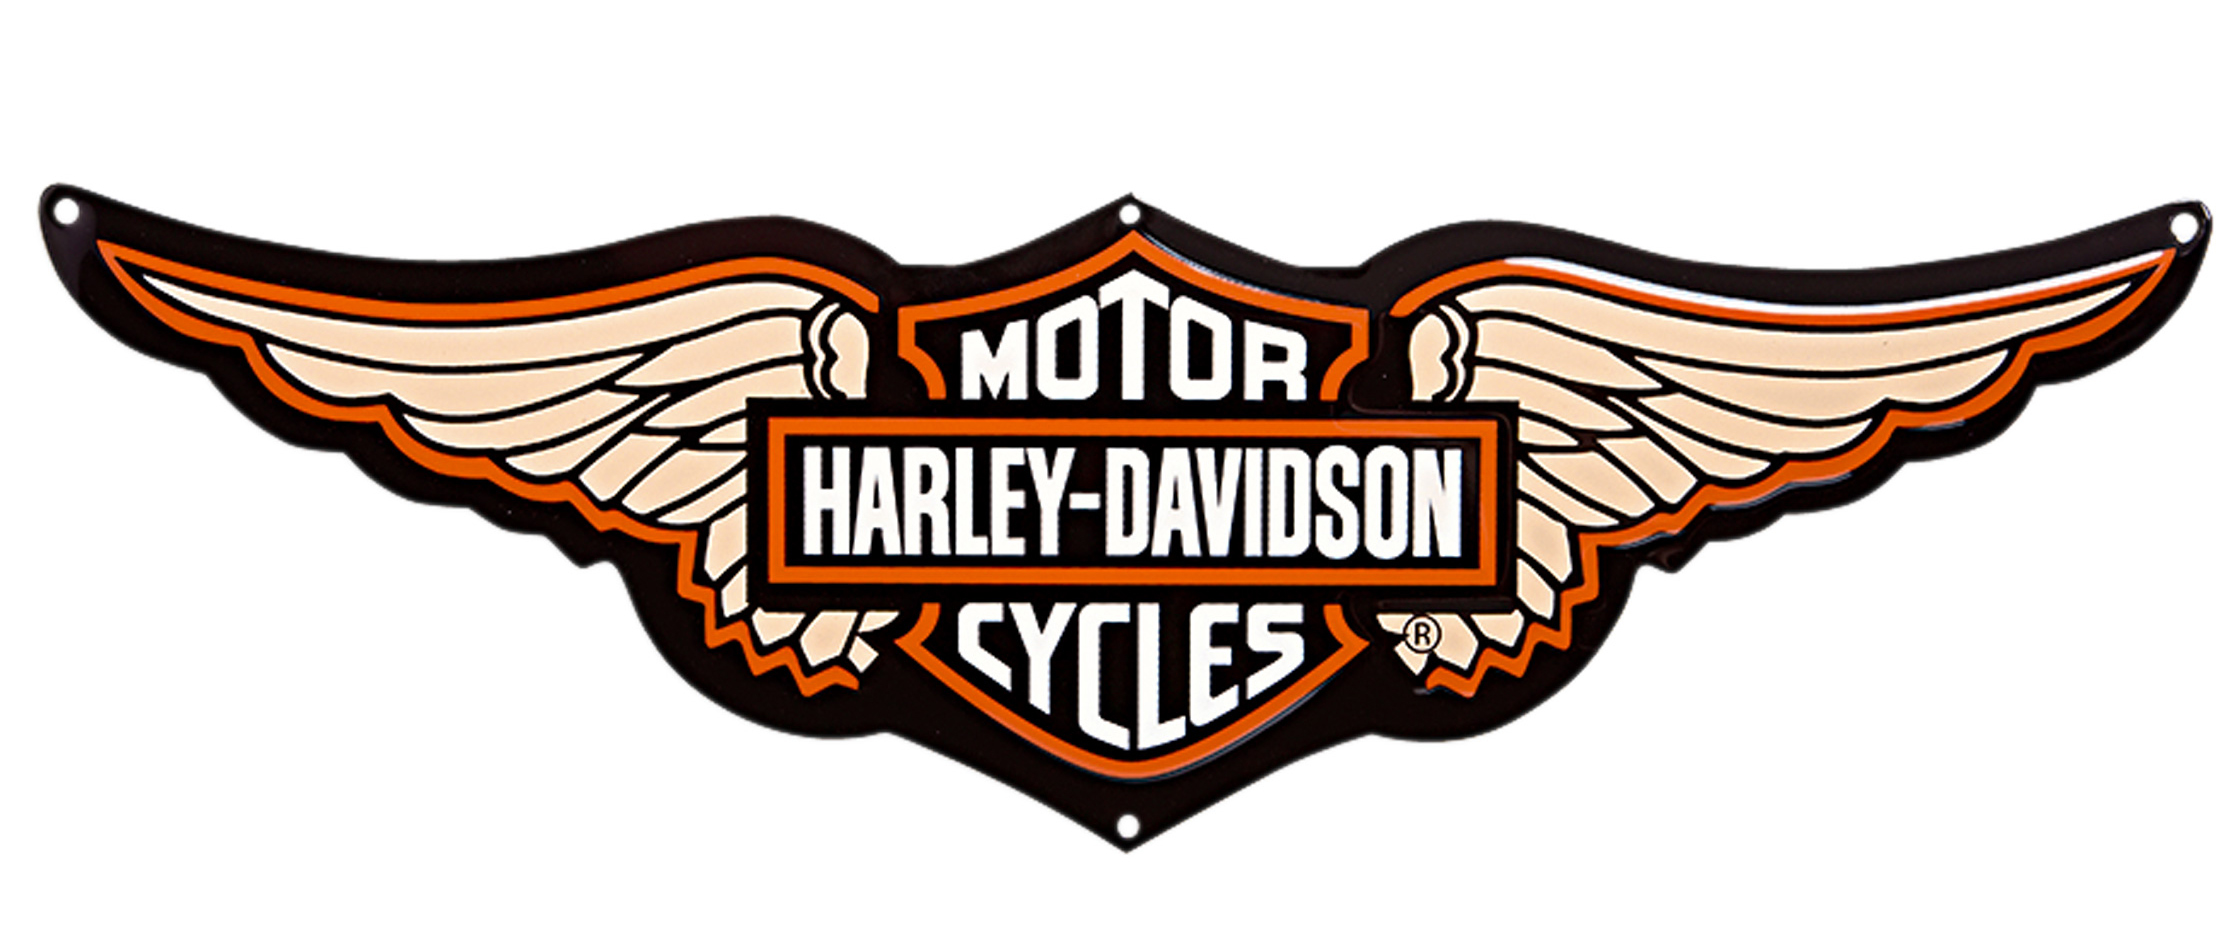 Image result for Harley Davidson logo